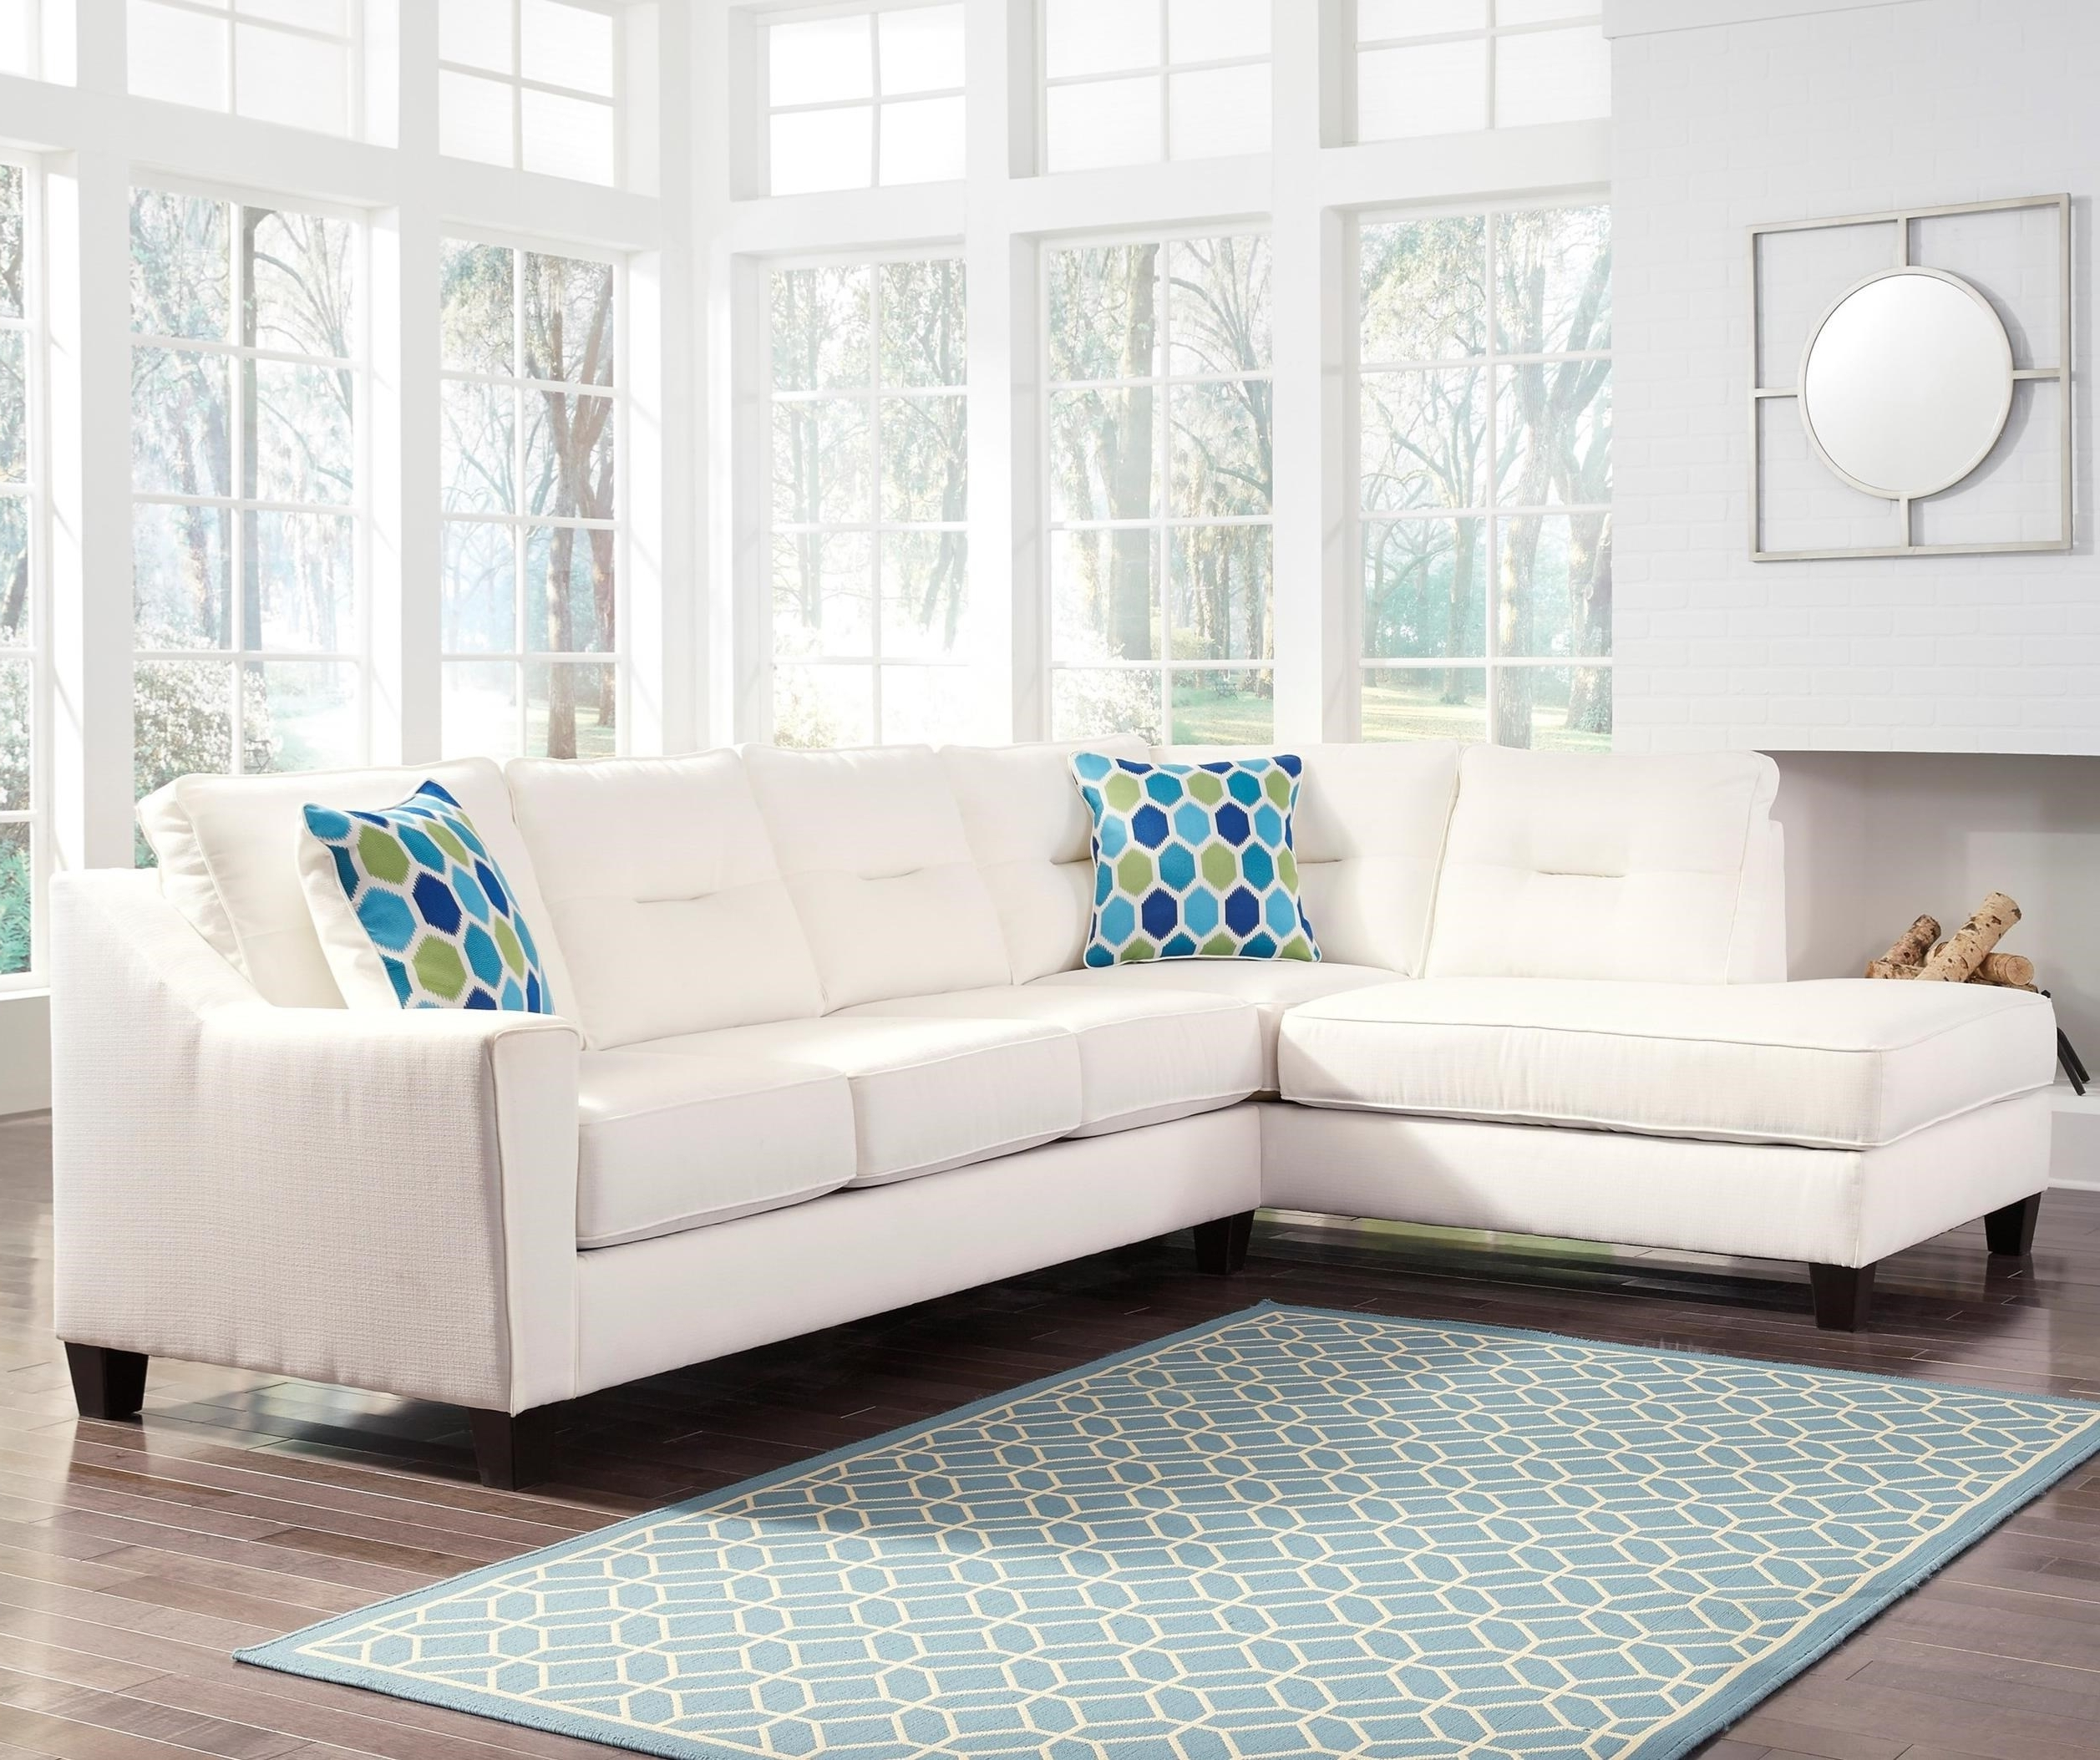 Benchcraft Kirwin Nuvella Sectional With Left Chaise In Intended For Recent East Bay Sectional Sofas (View 2 of 20)